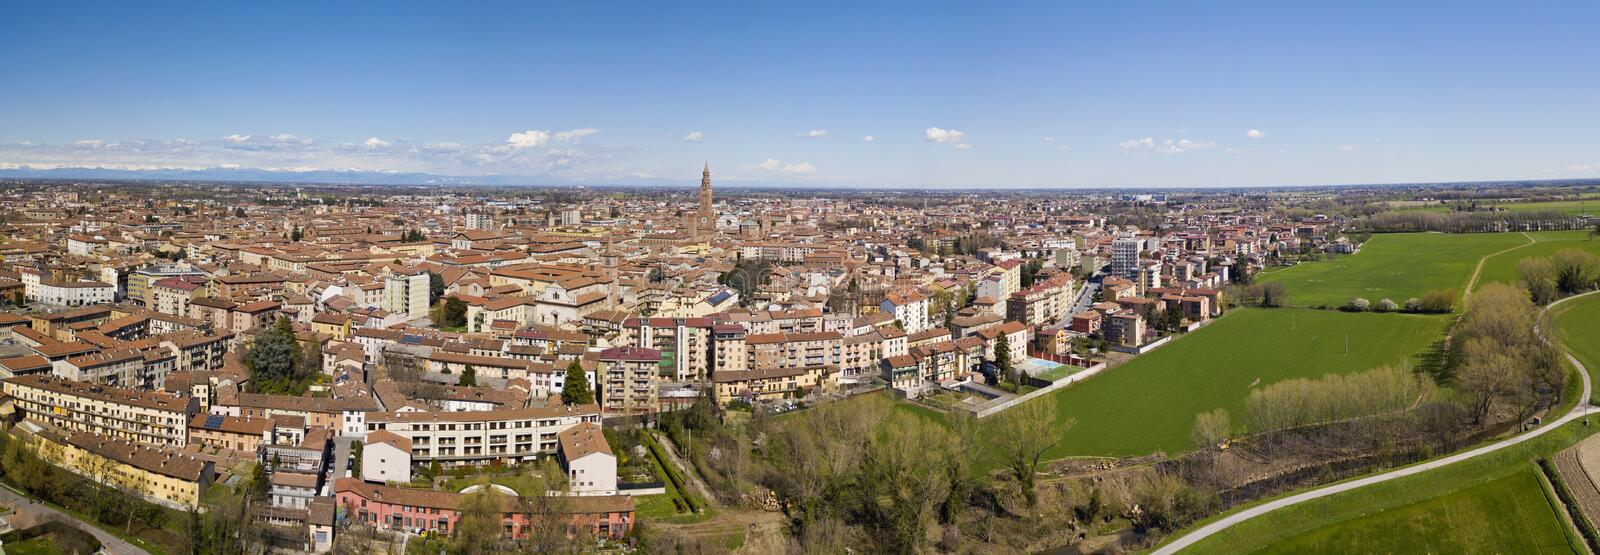 Aerial view of the city of Cremona, Lombardy, Italy. Cathedral and Torrazzo of Cremona stock photography